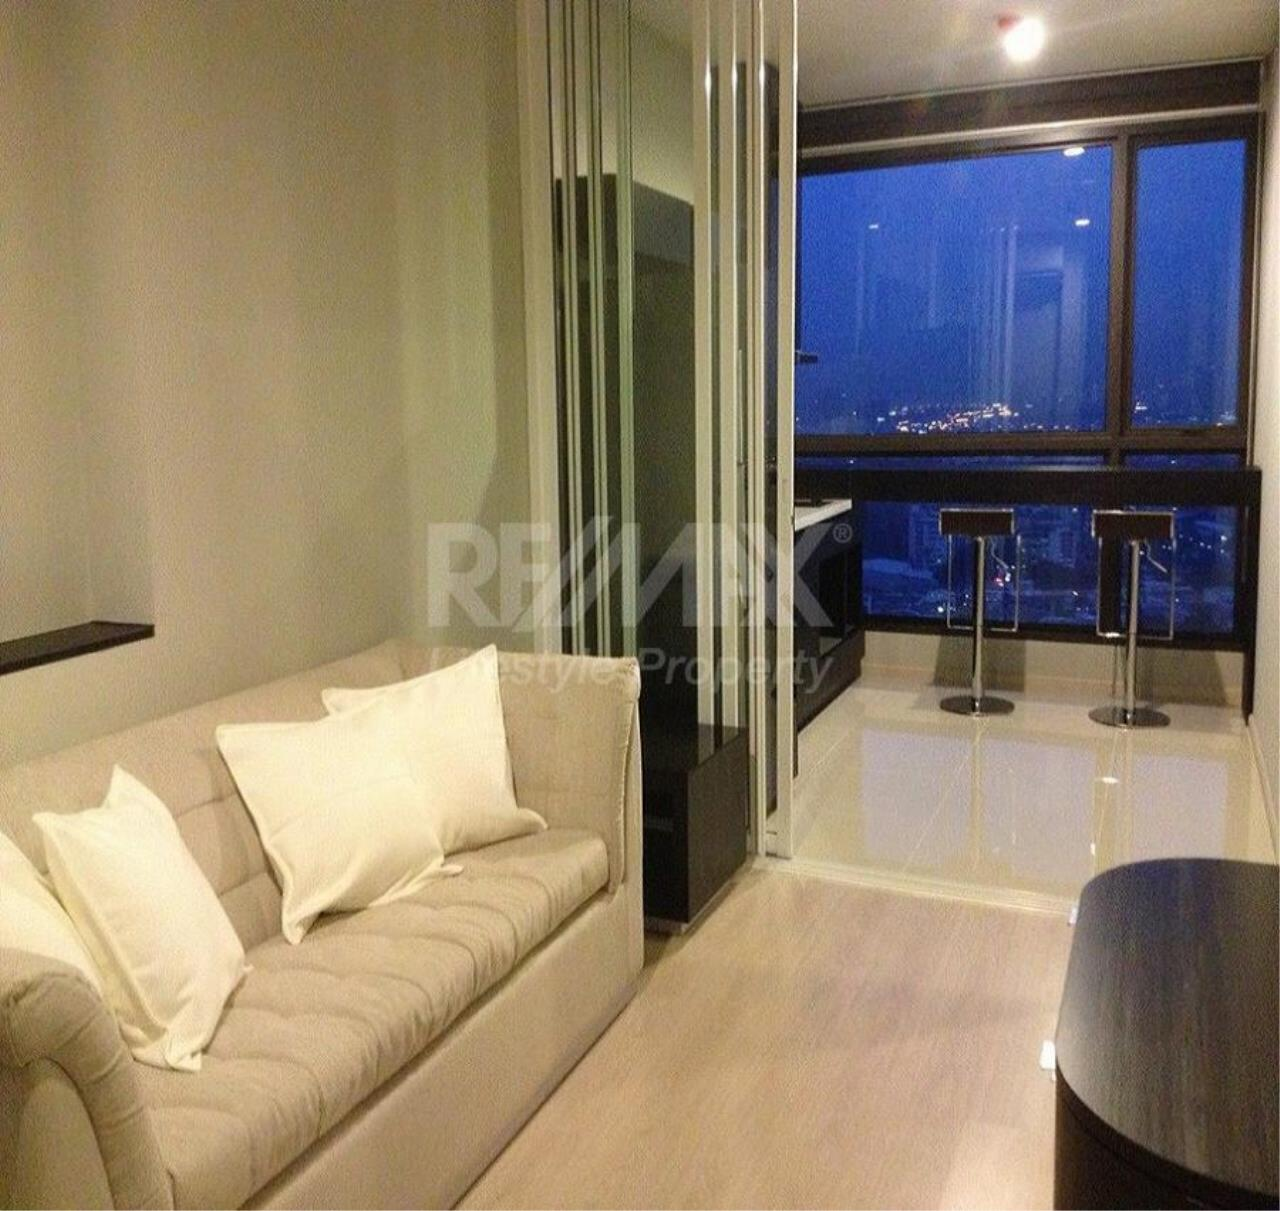 RE/MAX LifeStyle Property Agency's Rhythm Sukhumvit 44/1 2